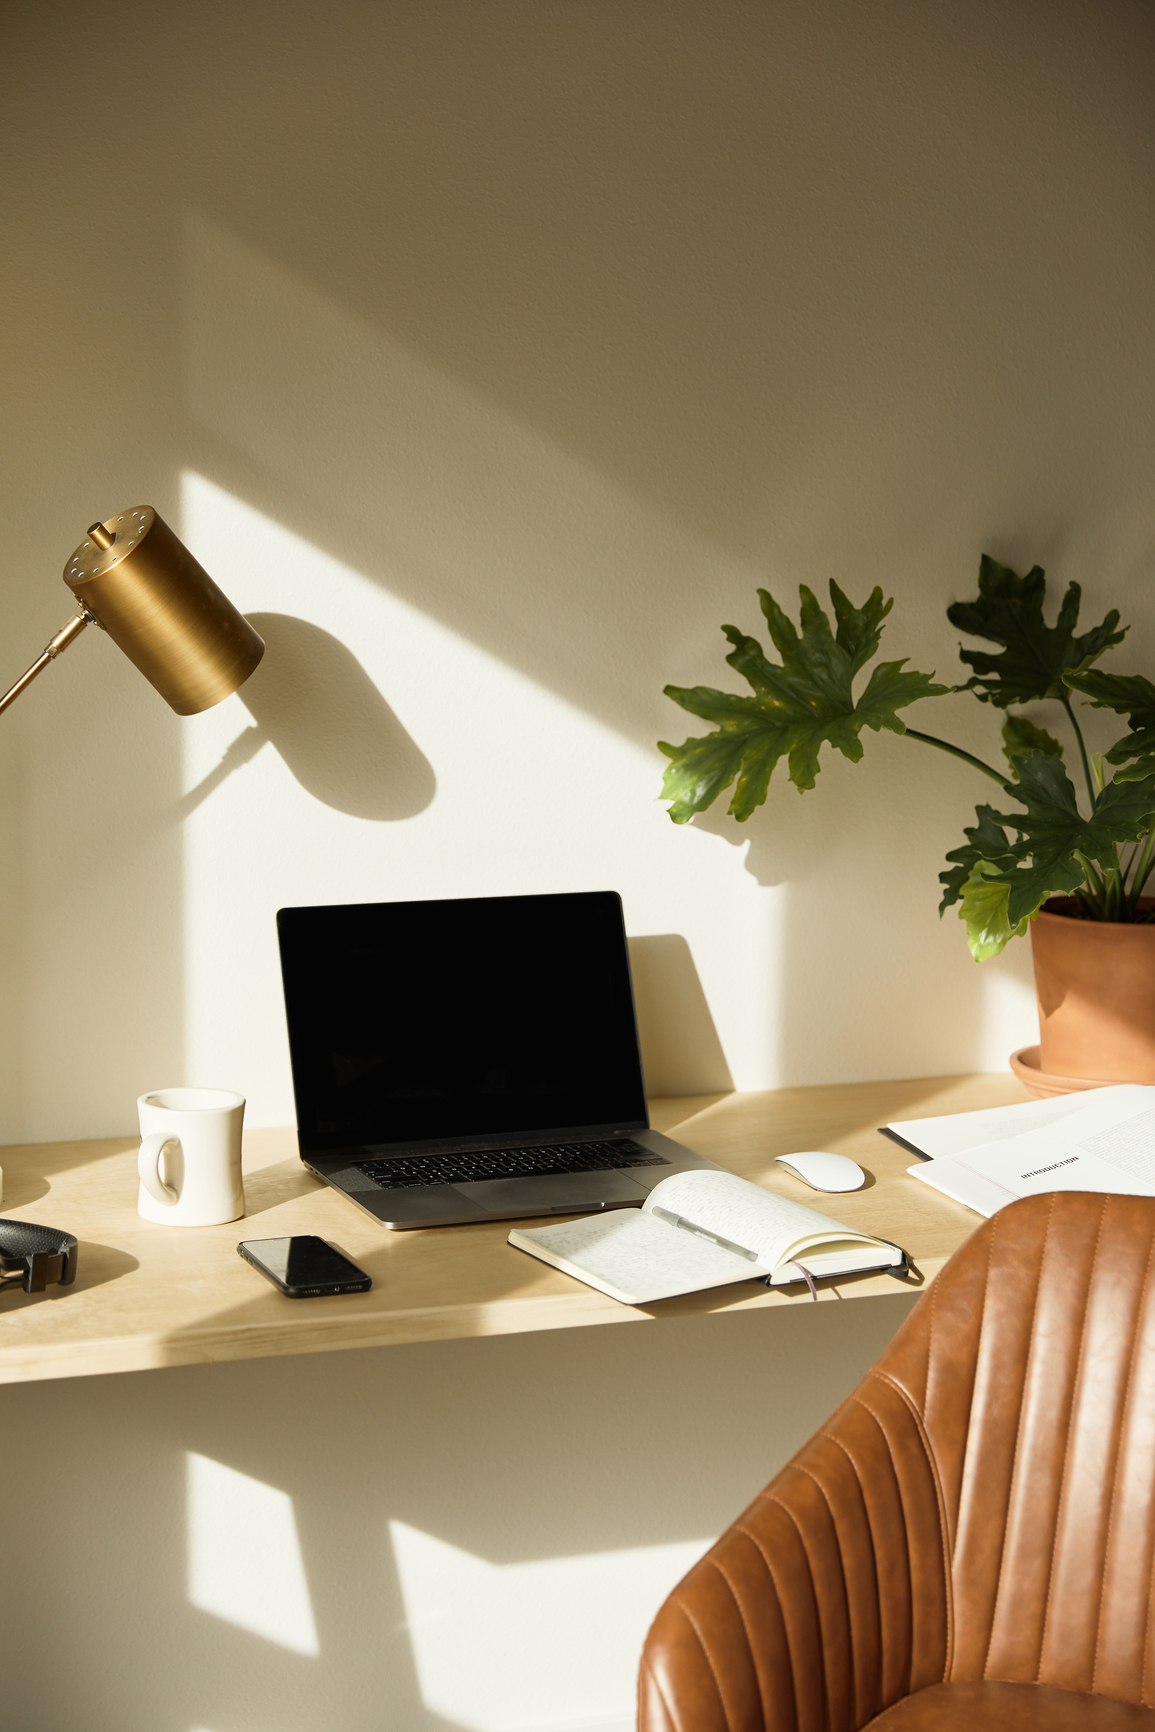 wooden design with laptop and plant